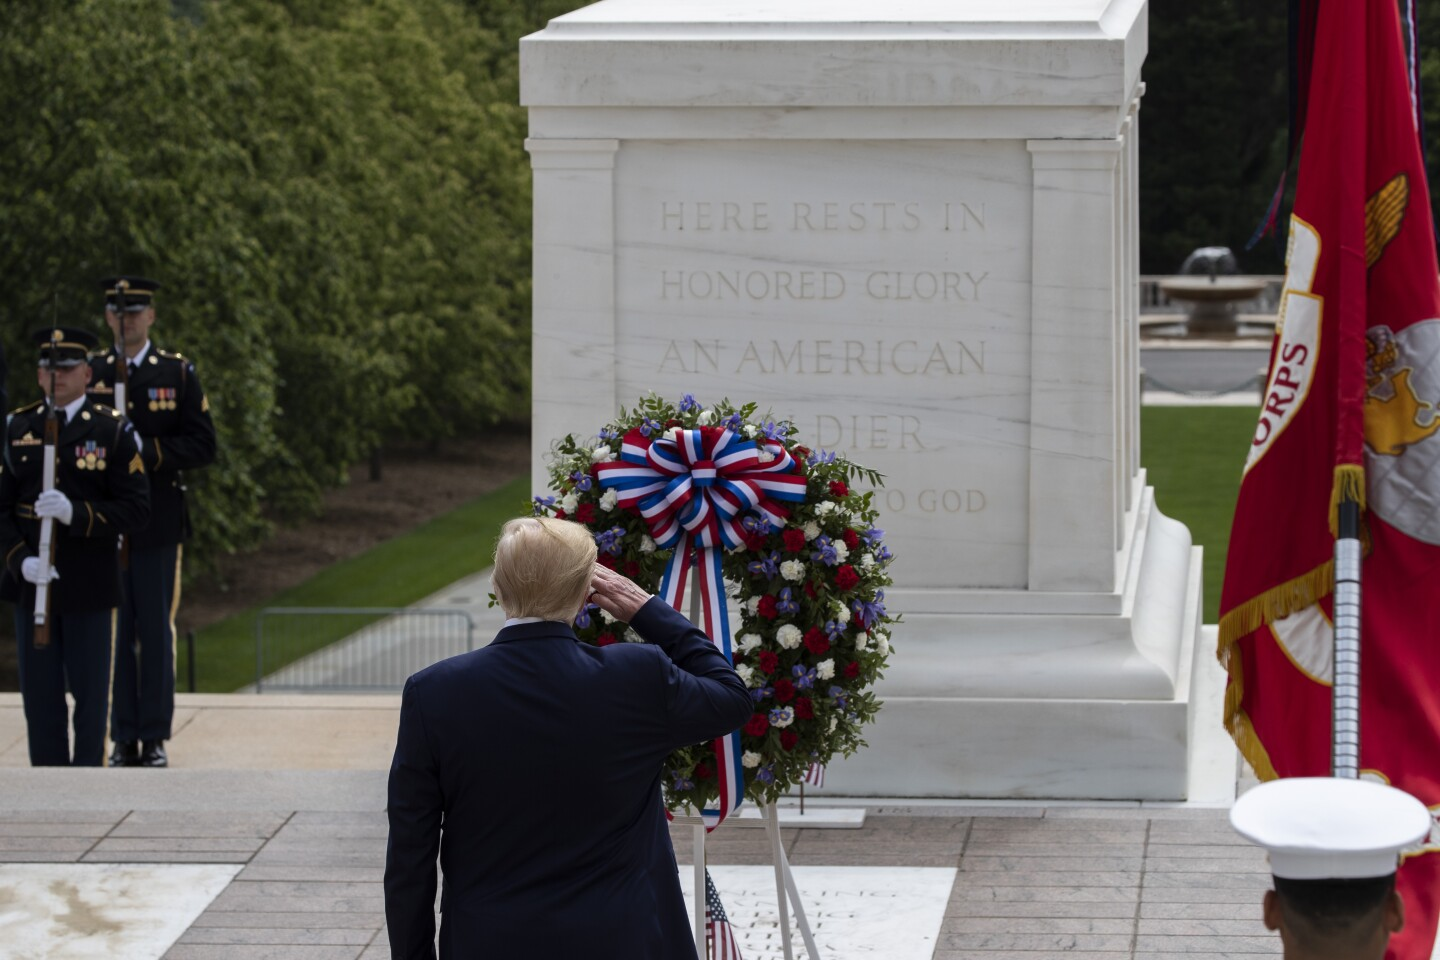 President Donald Trump salutes after placing a wreath at the Tomb of the Unknown Soldier in Arlington National Cemetery, in honor of Memorial Day, Monday, May 25, 2020, in Arlington, Va. (AP Photo/Alex Brandon)